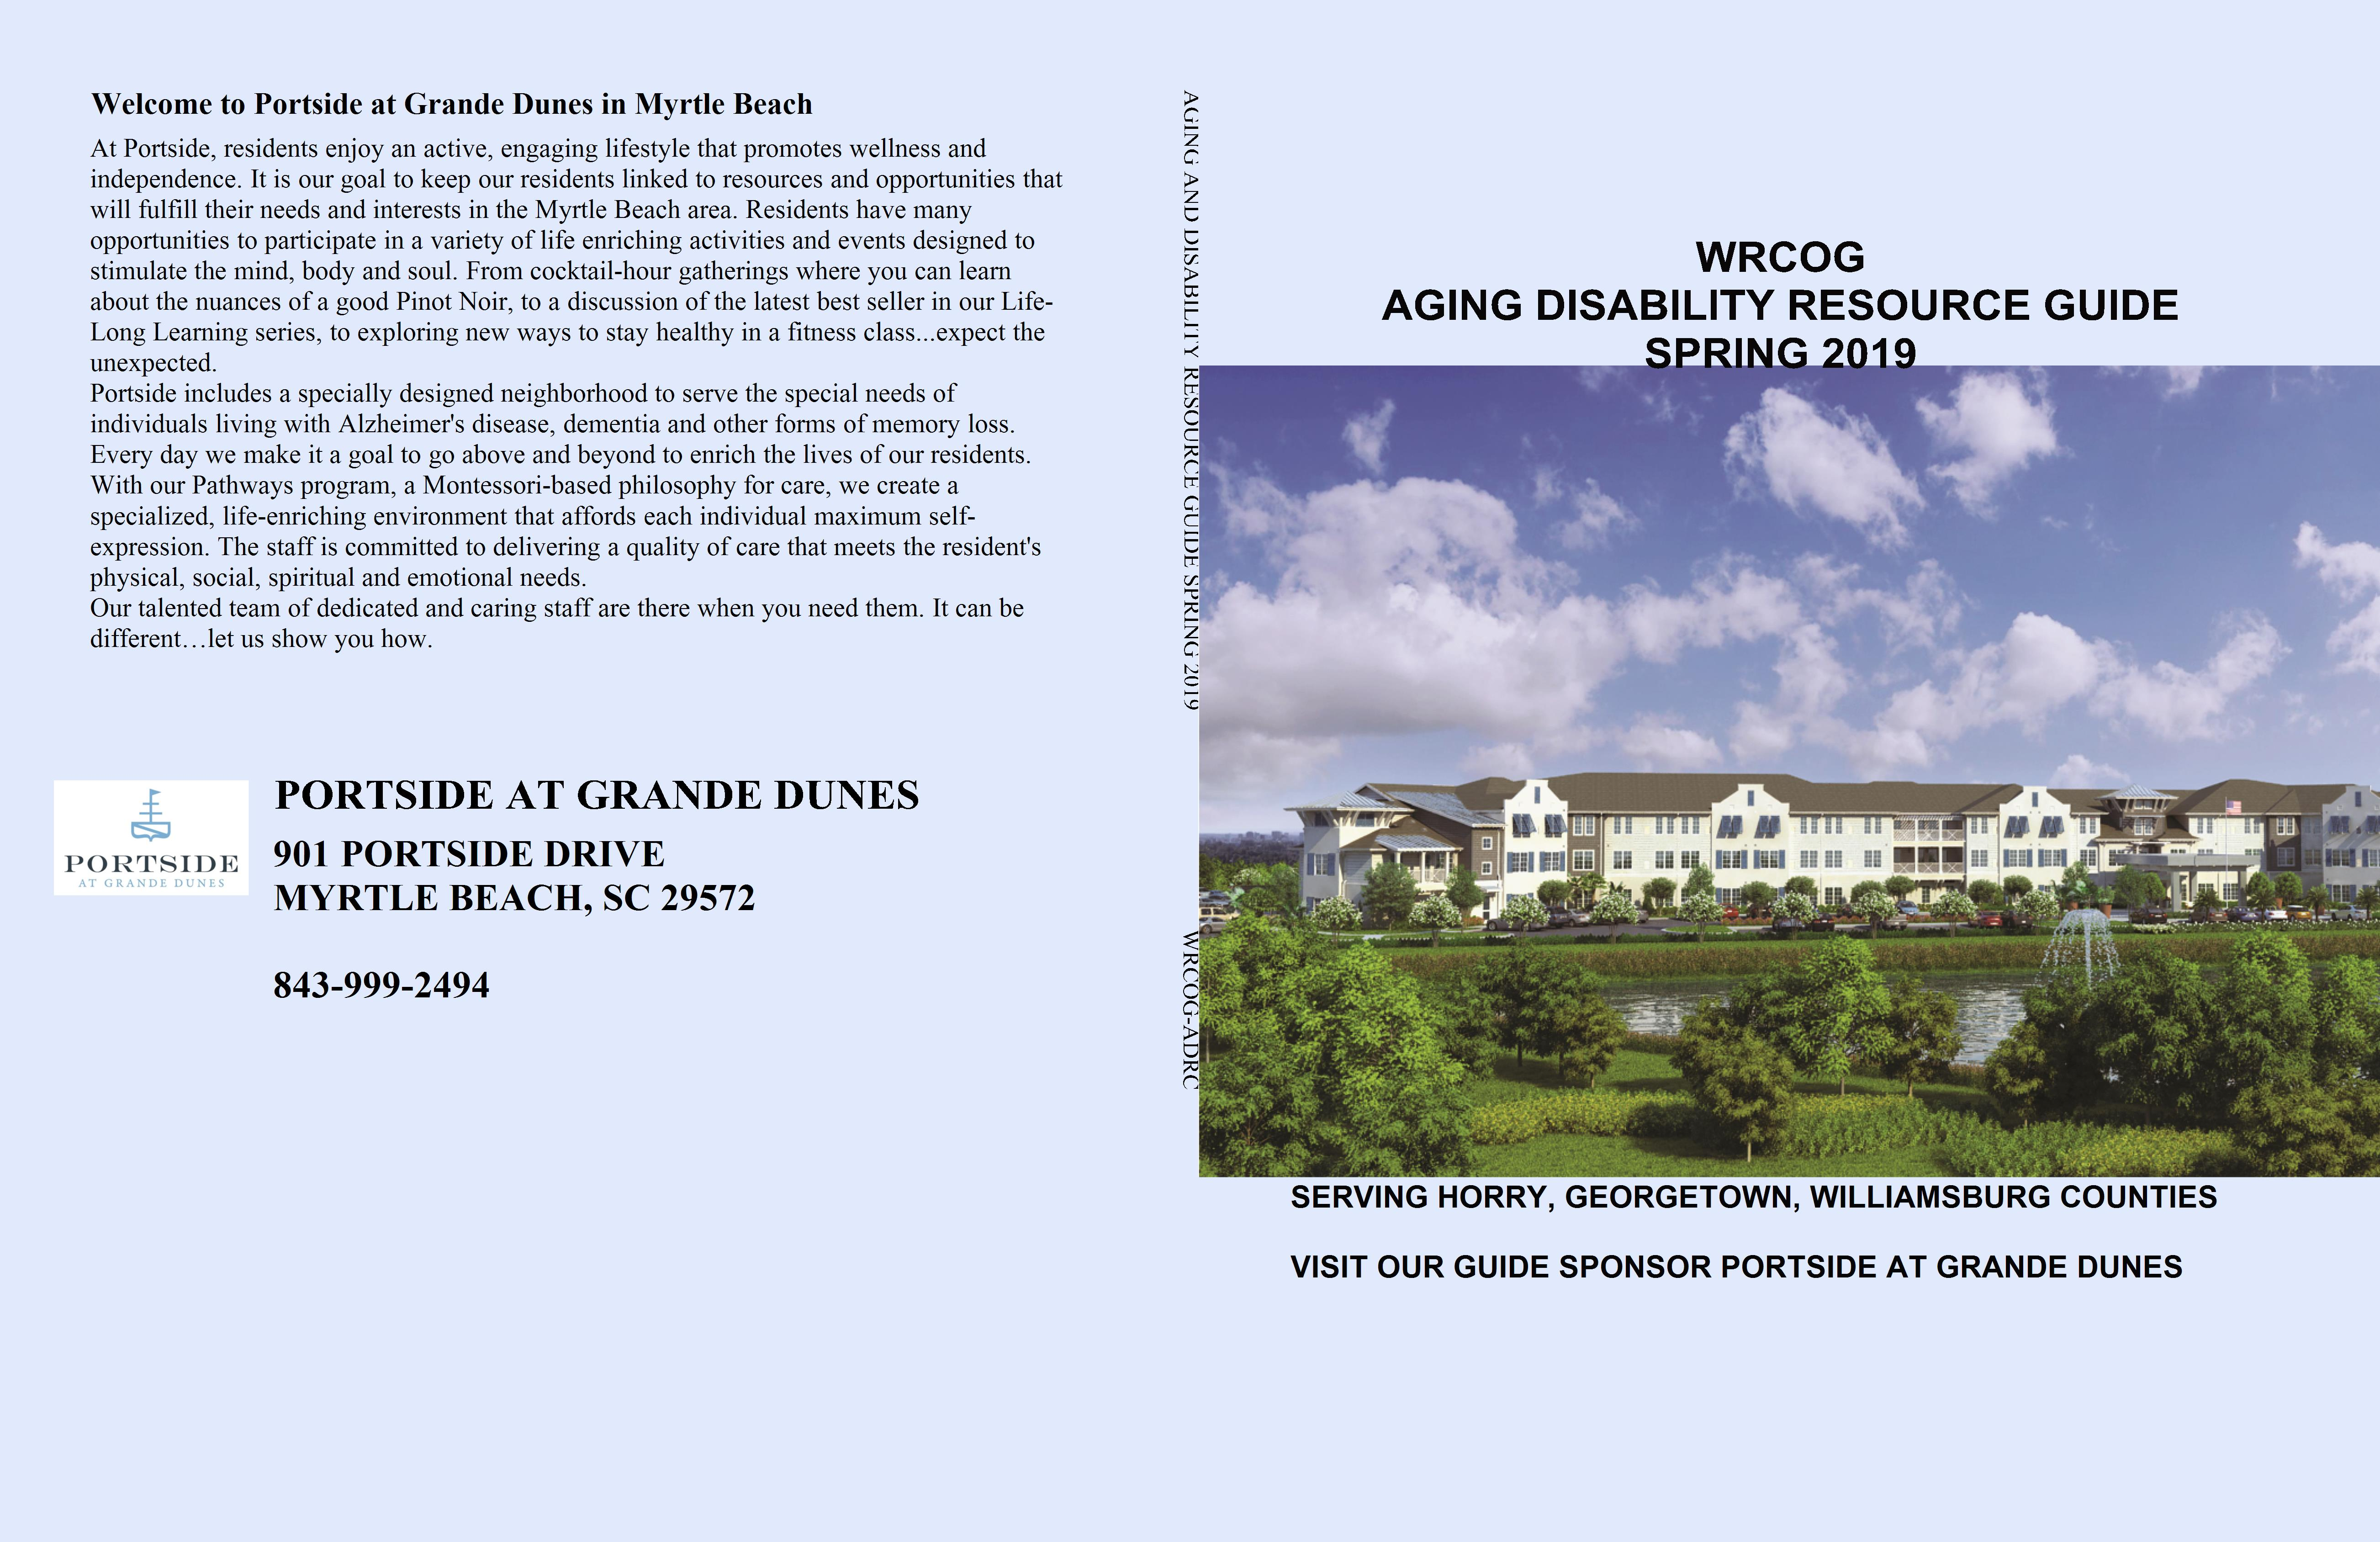 AGING AND DISABILITY RESOURCE GUIDE SPRING 2019 cover image